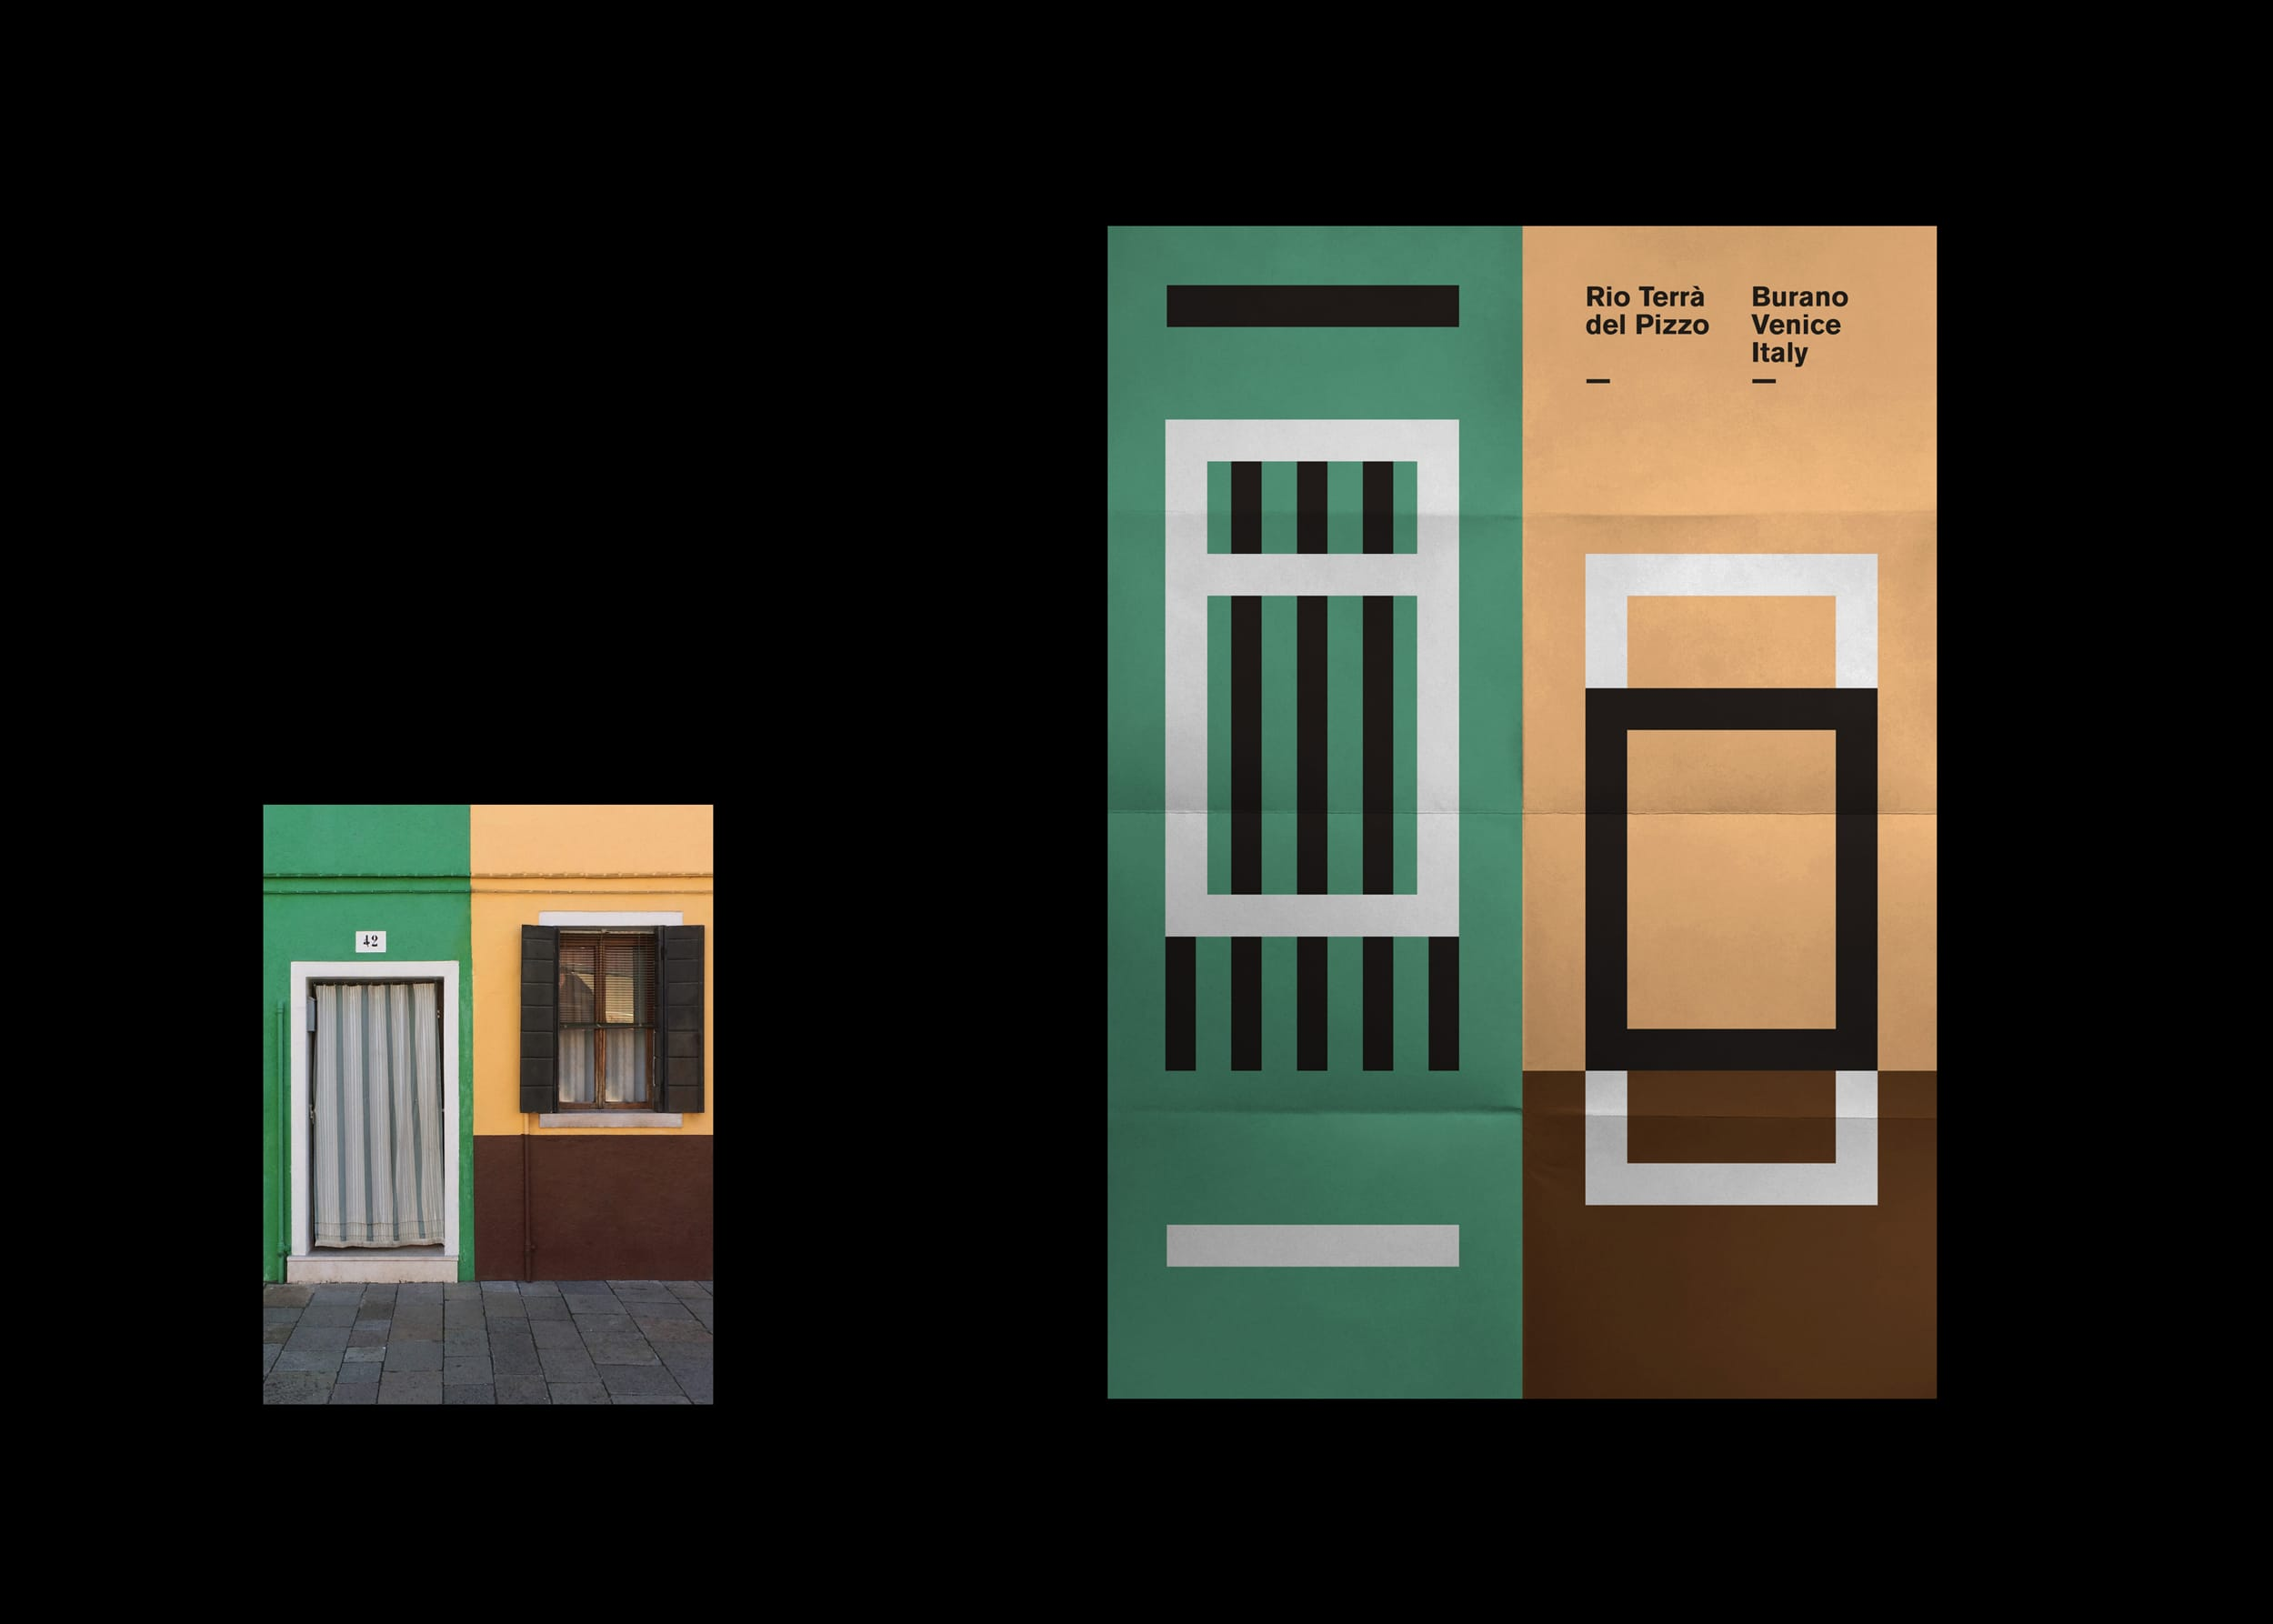 Burano poster series – Focus on yellow, green and brown house